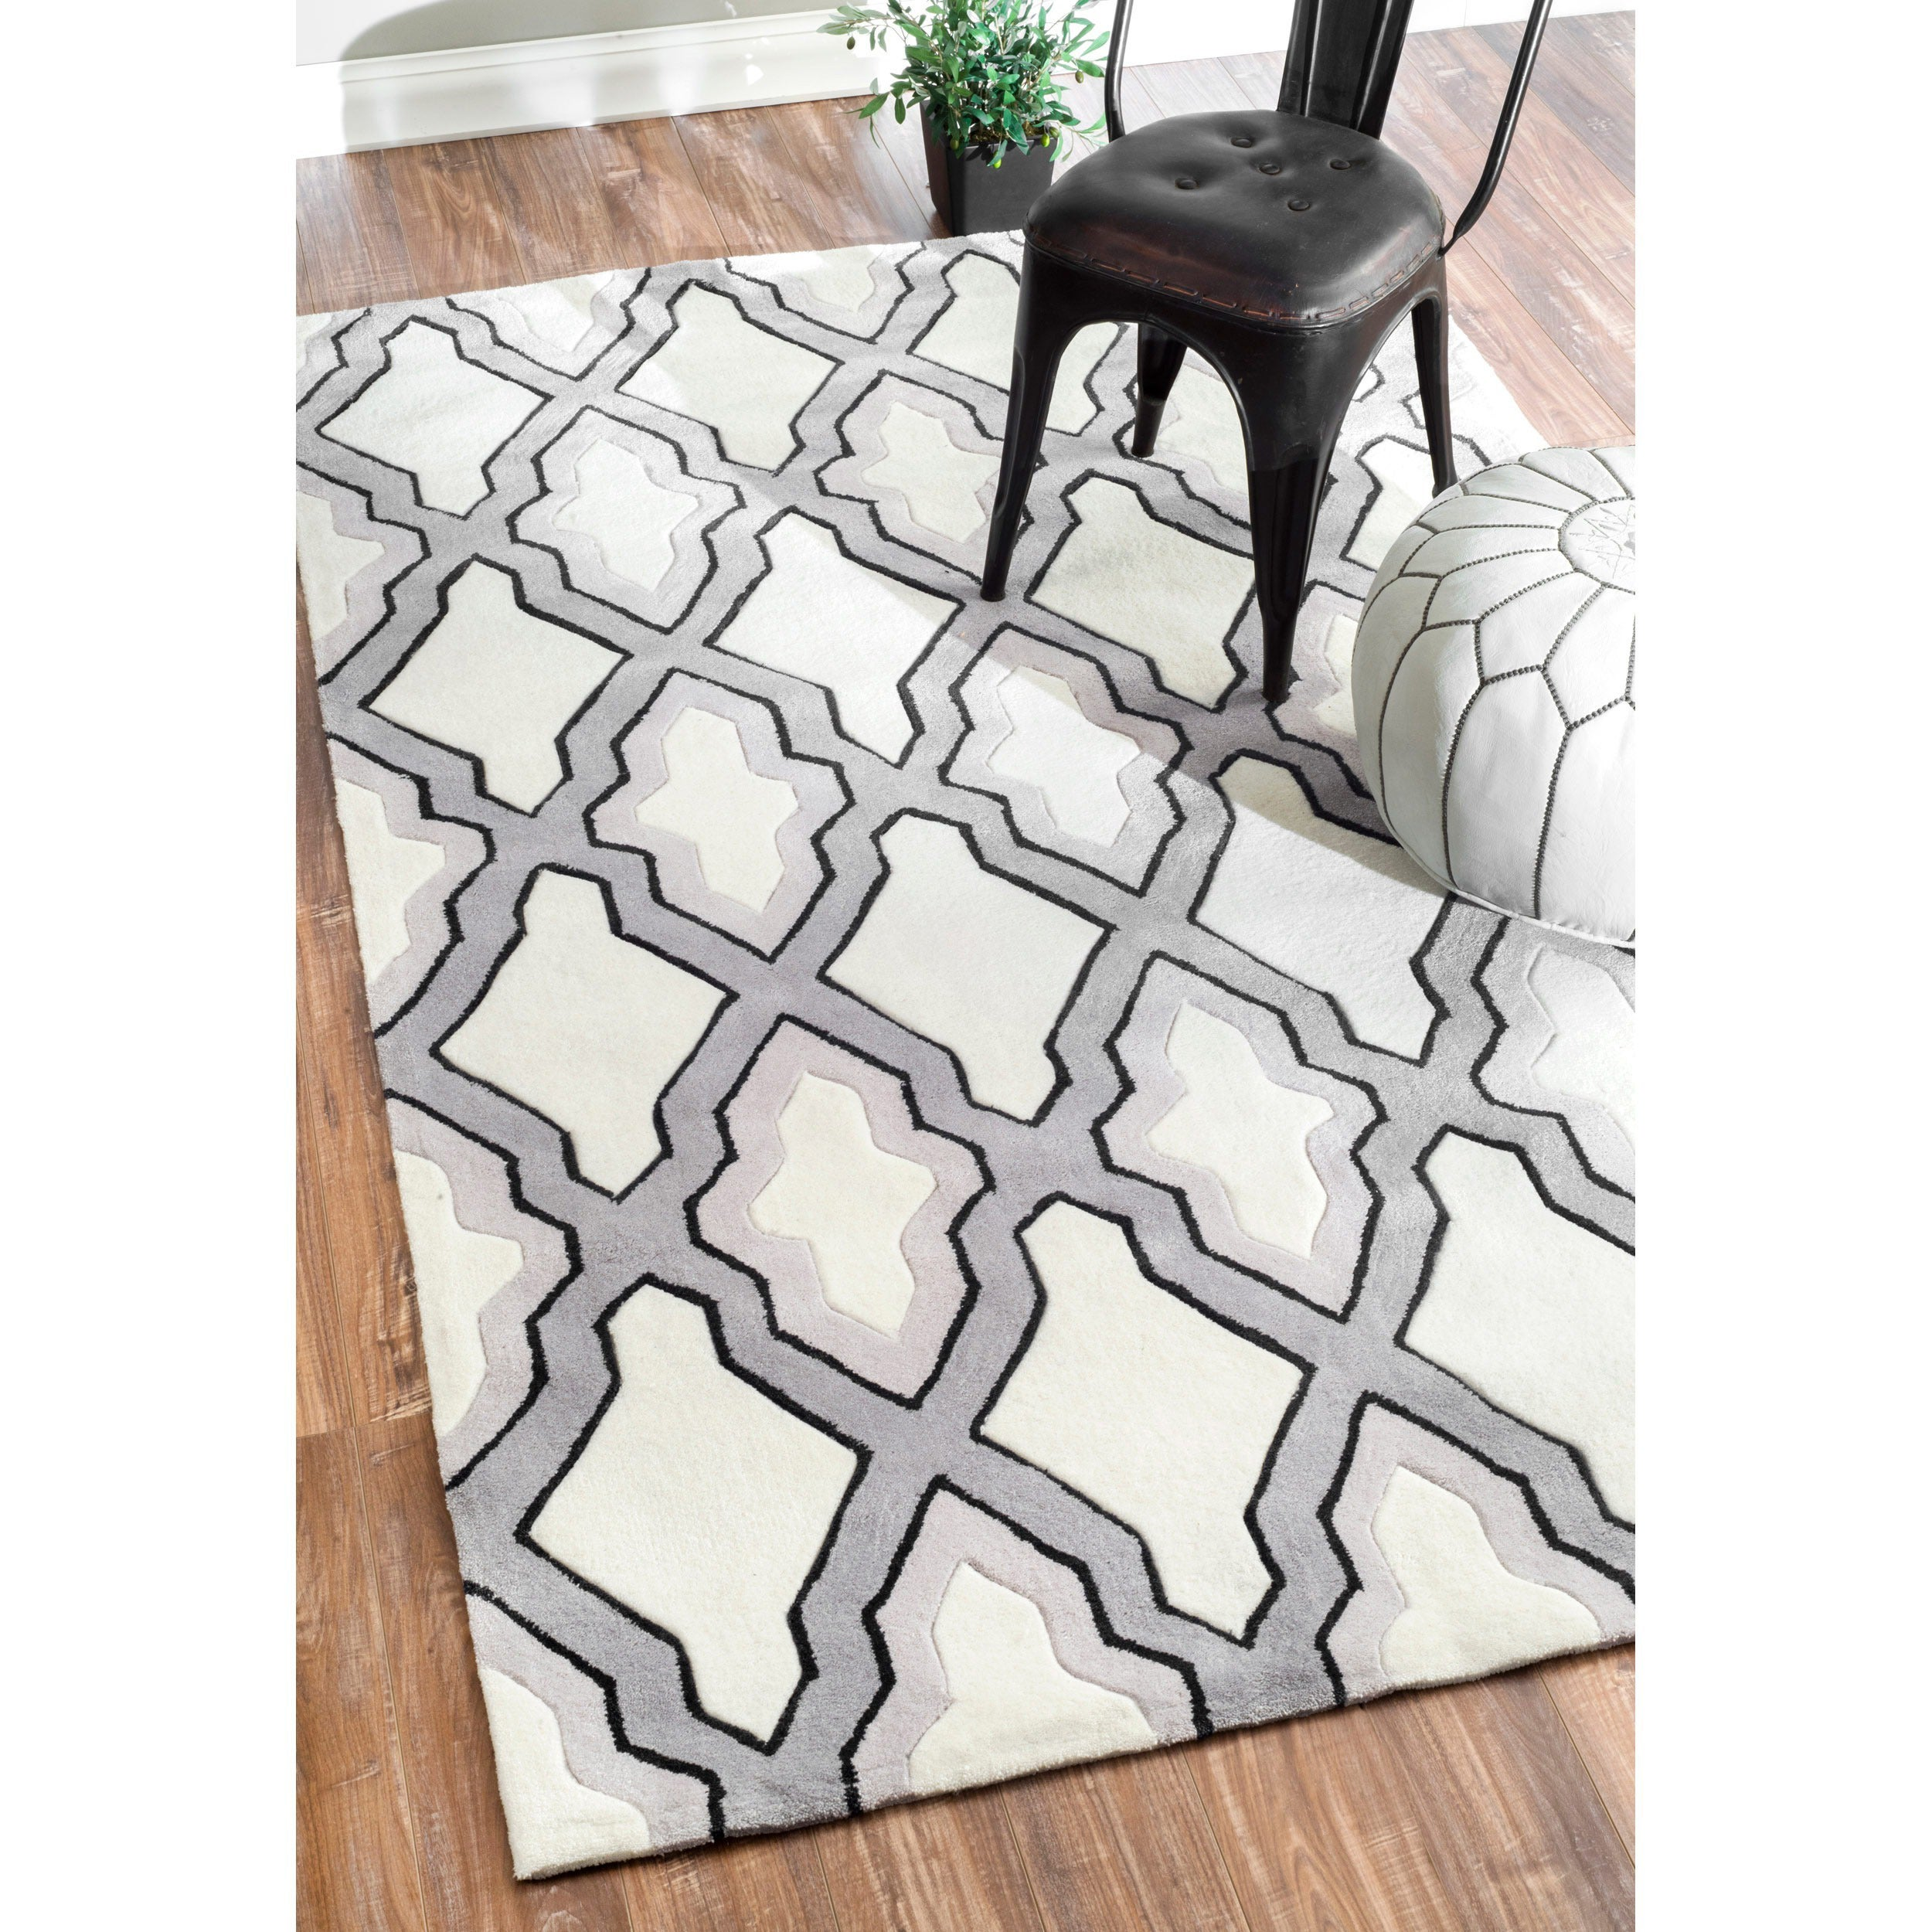 nuLOOM Handmade Marrakesh Moroccan Grey Trellis Rug (5' x 8') at Sears.com